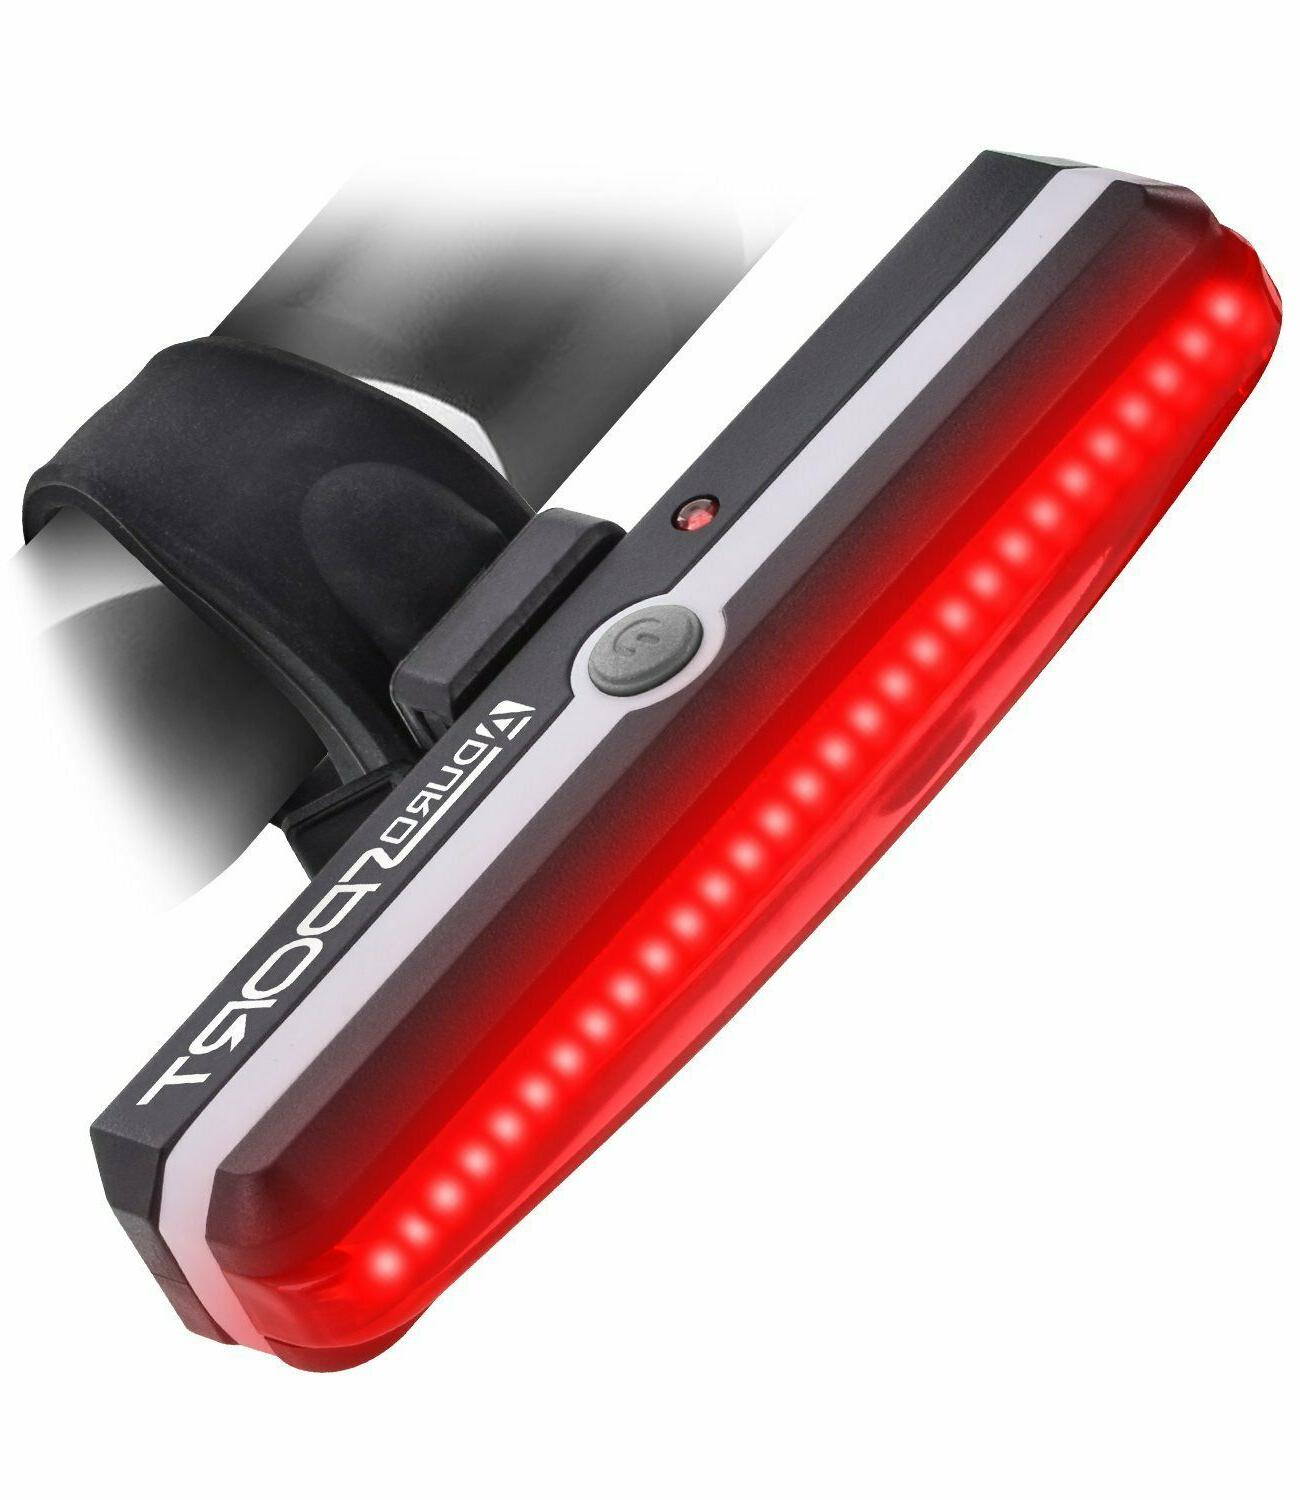 One Touch Mount and Dismount IPX4 Waterproof Ultra Bright Powerful Safety Taillight for all Bikes Aduro Sport LED Rear Bike Light USB Rechargeable 6 Light Mode Options